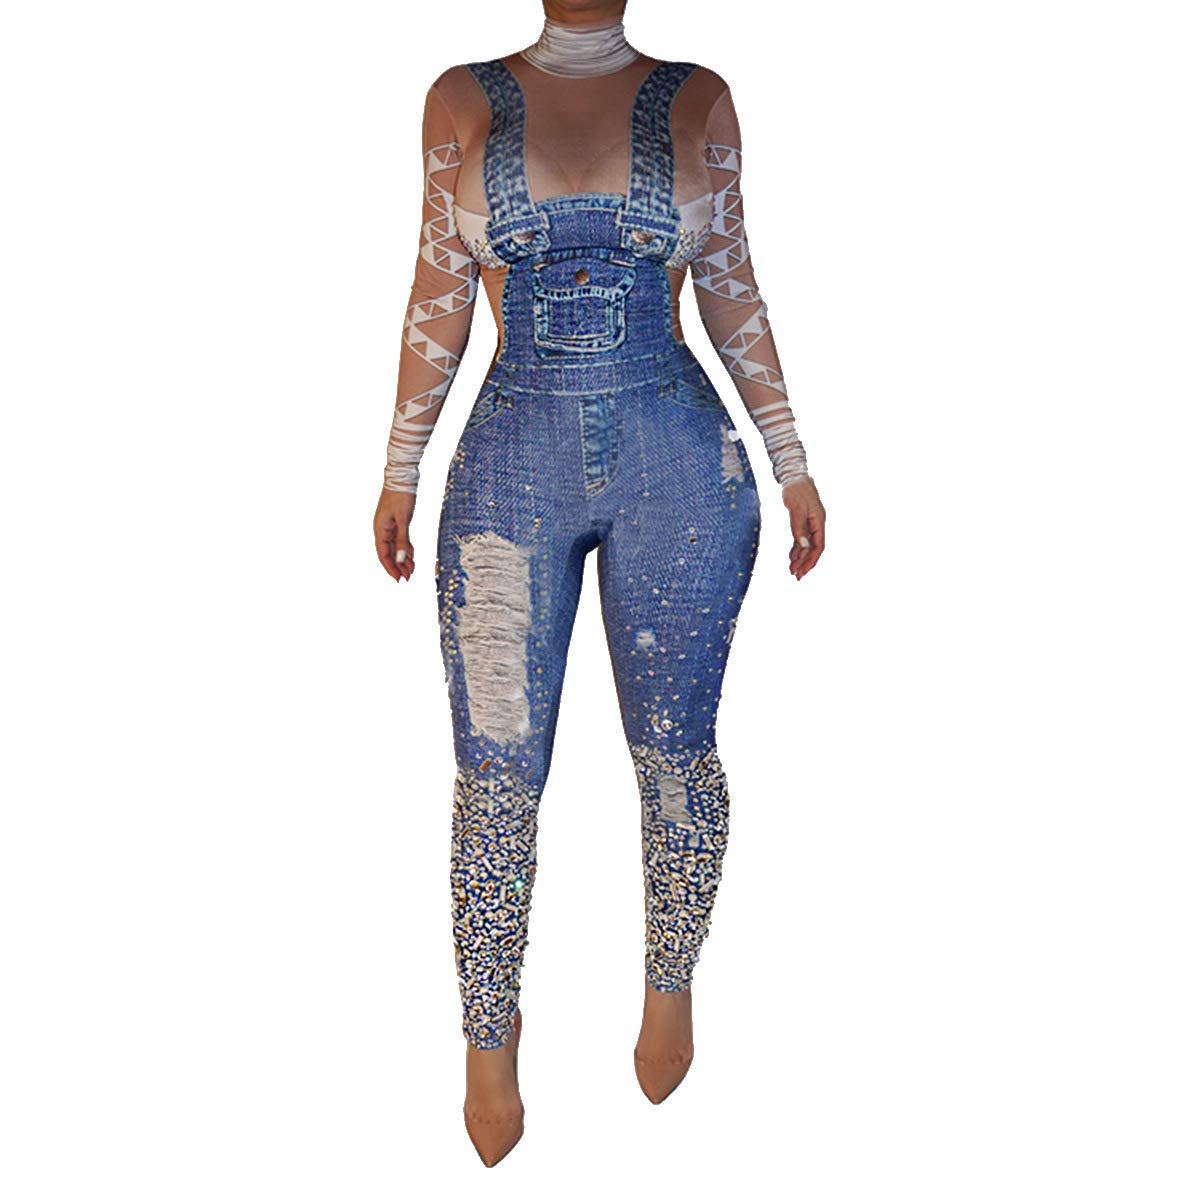 f7516a37cccd Amazon.com  Women s Sexy Bodycon Jumpsuit Long Sleeve Tops Ripped Diamond  Printed High Waisted Skinny Pants One Piece Romper Plus Size  Clothing